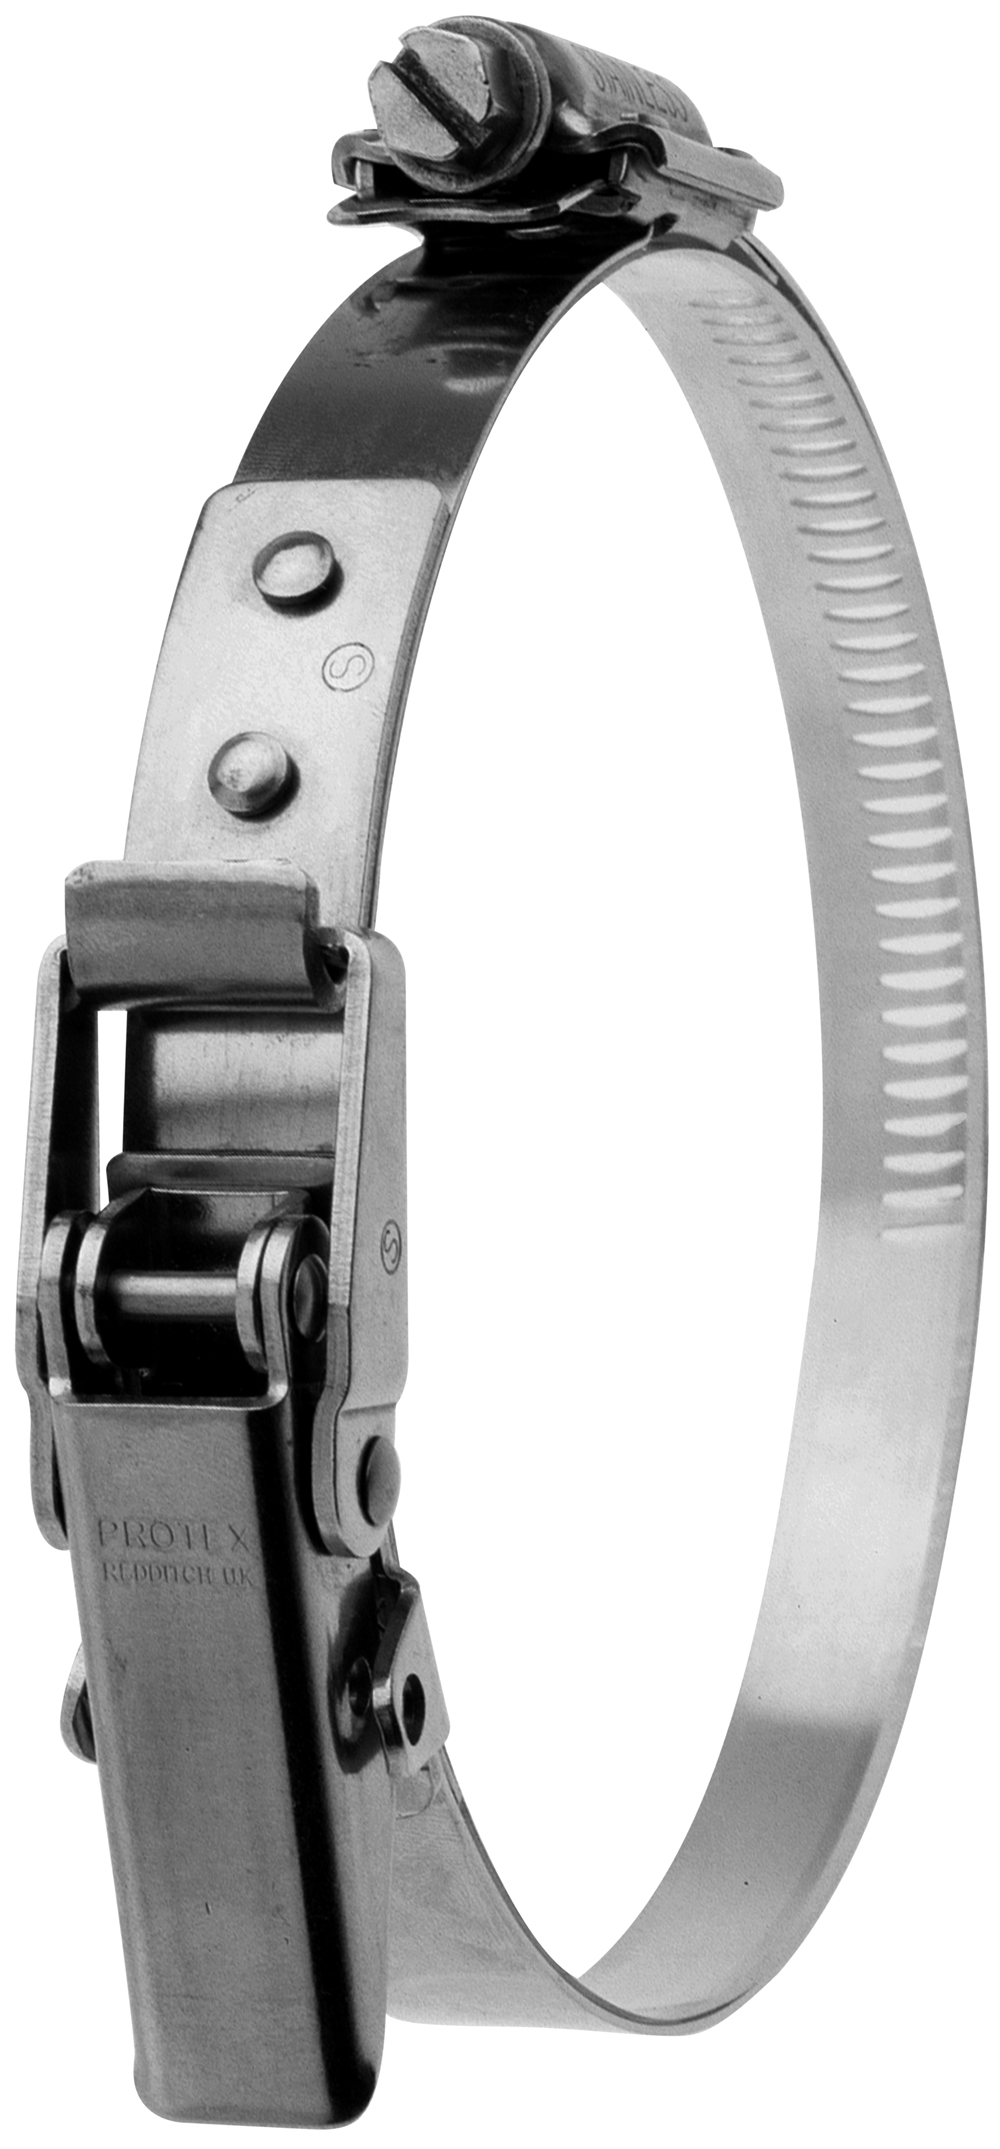 170-215mm Diameter Hi-Torque Rigid Claw Stainless Steel Quick Release Bandclamp (Natural)